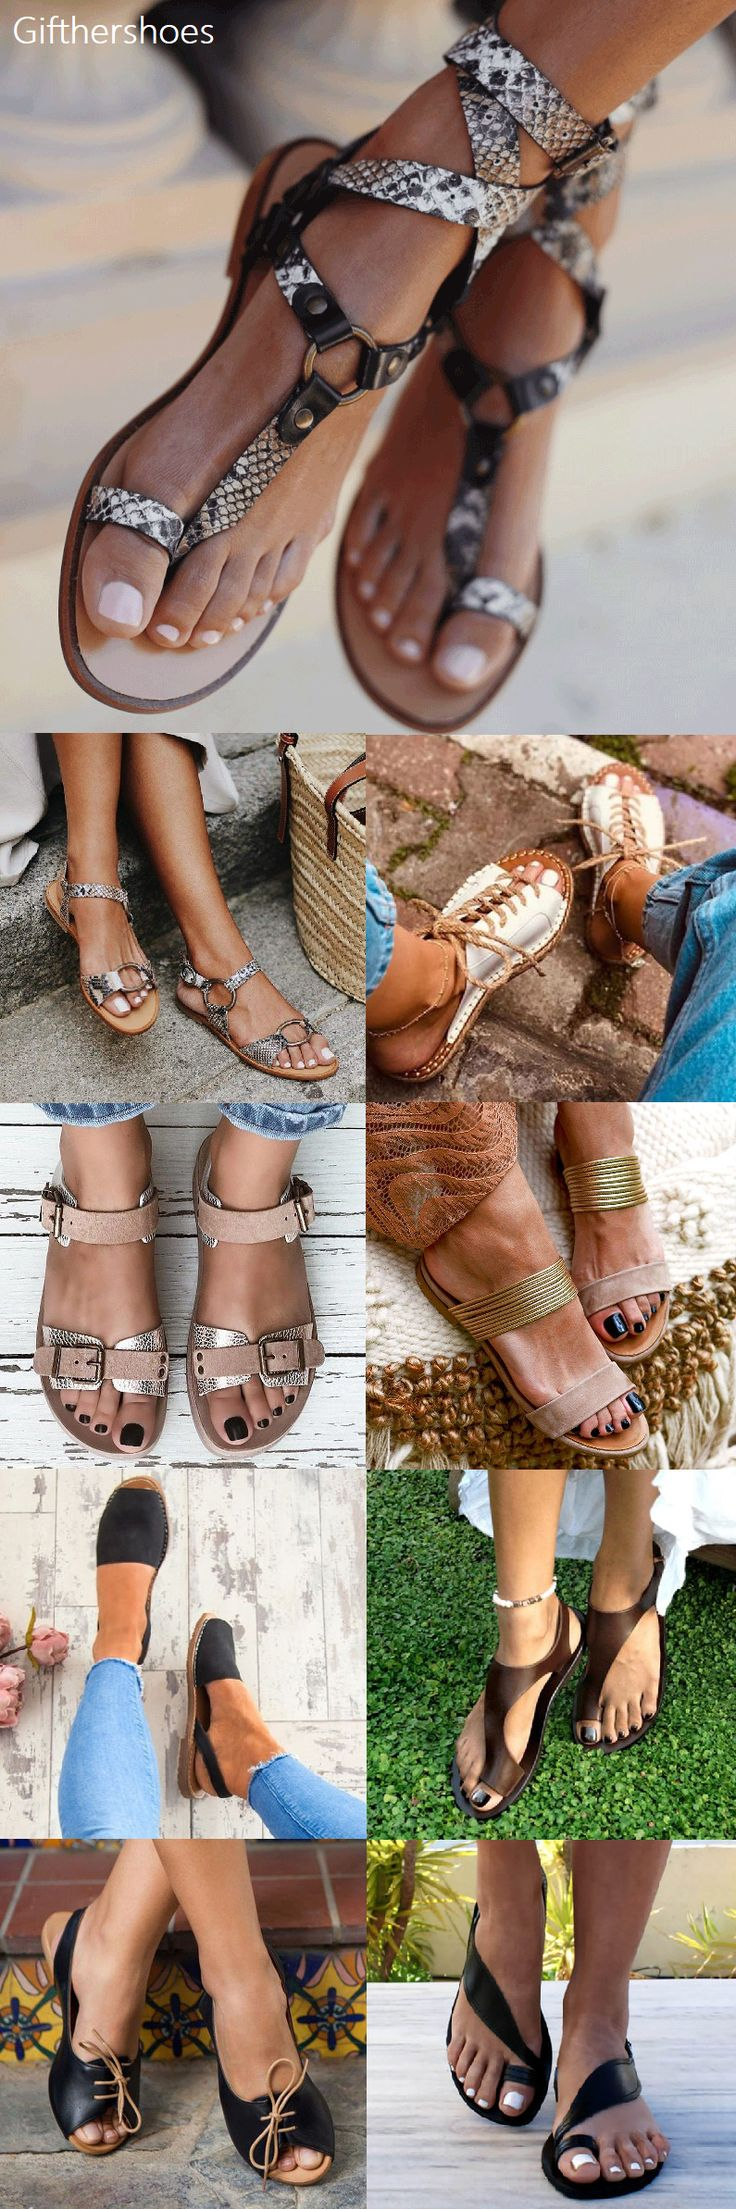 SHOP NOW>>Latest Sandals Shoes Picks for Your Daily Outfits.Must Have Pair!